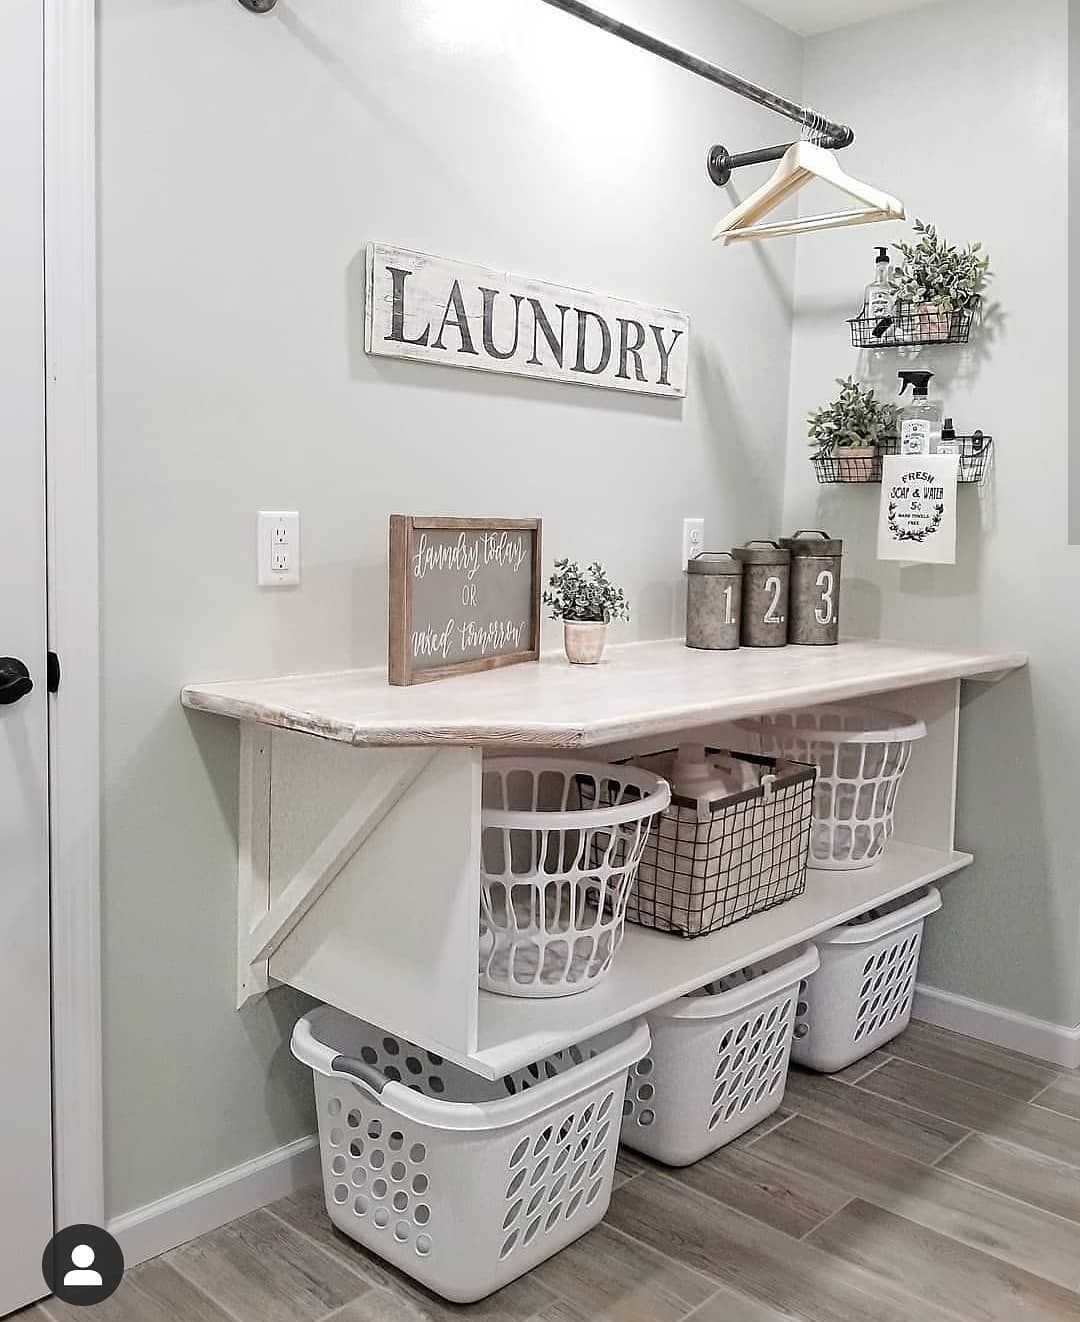 "Farmhouse Stylebook on Instagram: ""Simple and sweet laundry room  Follow us ----------> @farmhousestylebook for more home decor ideas  Home belongs to @blessed_ranch…"""